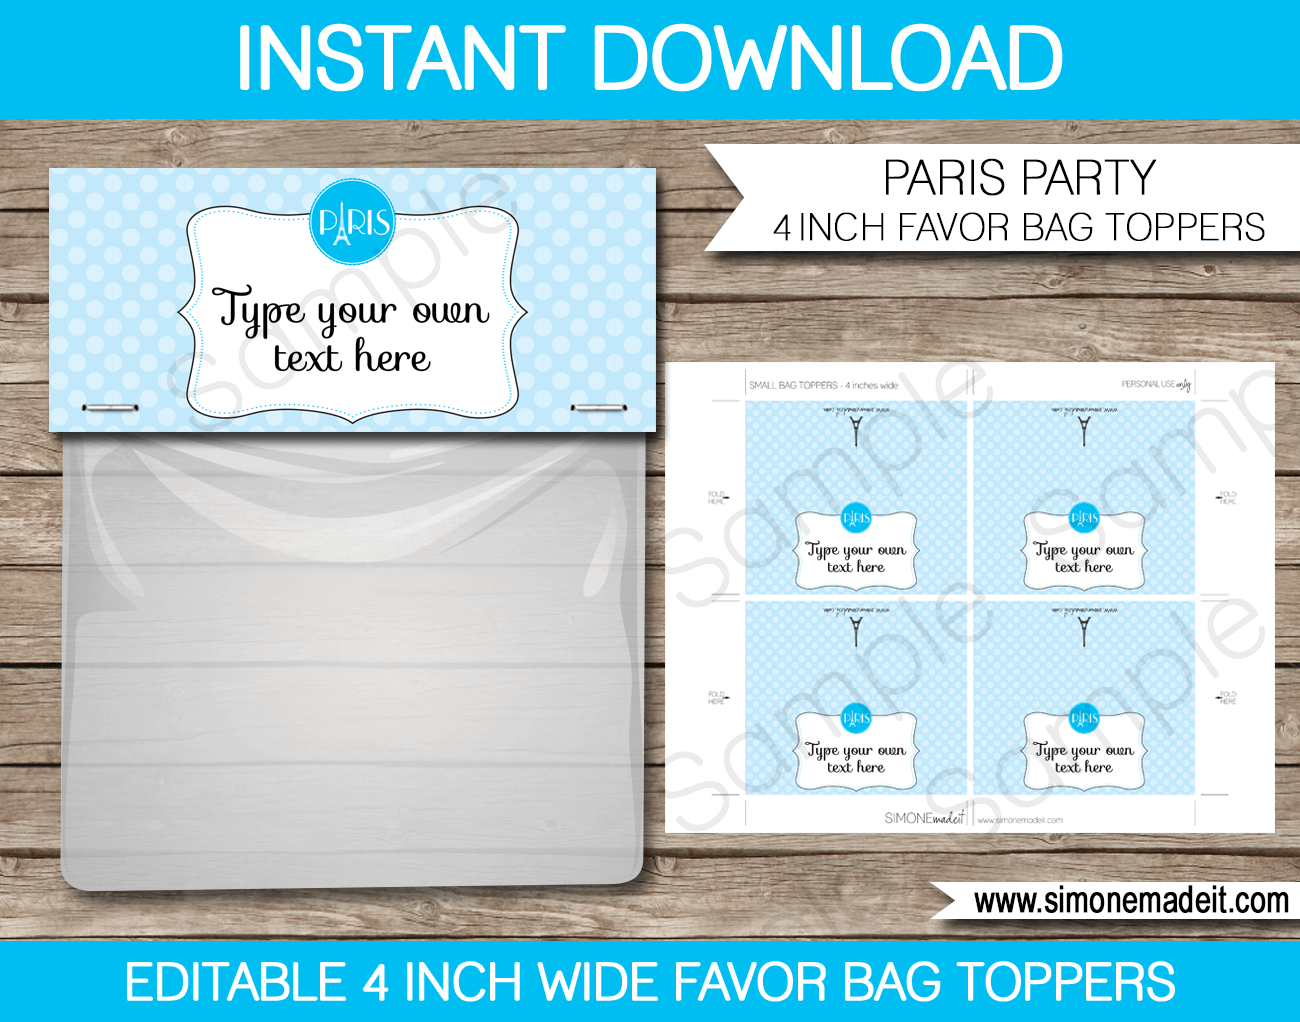 Bag Tools Images: Bag Topper Template